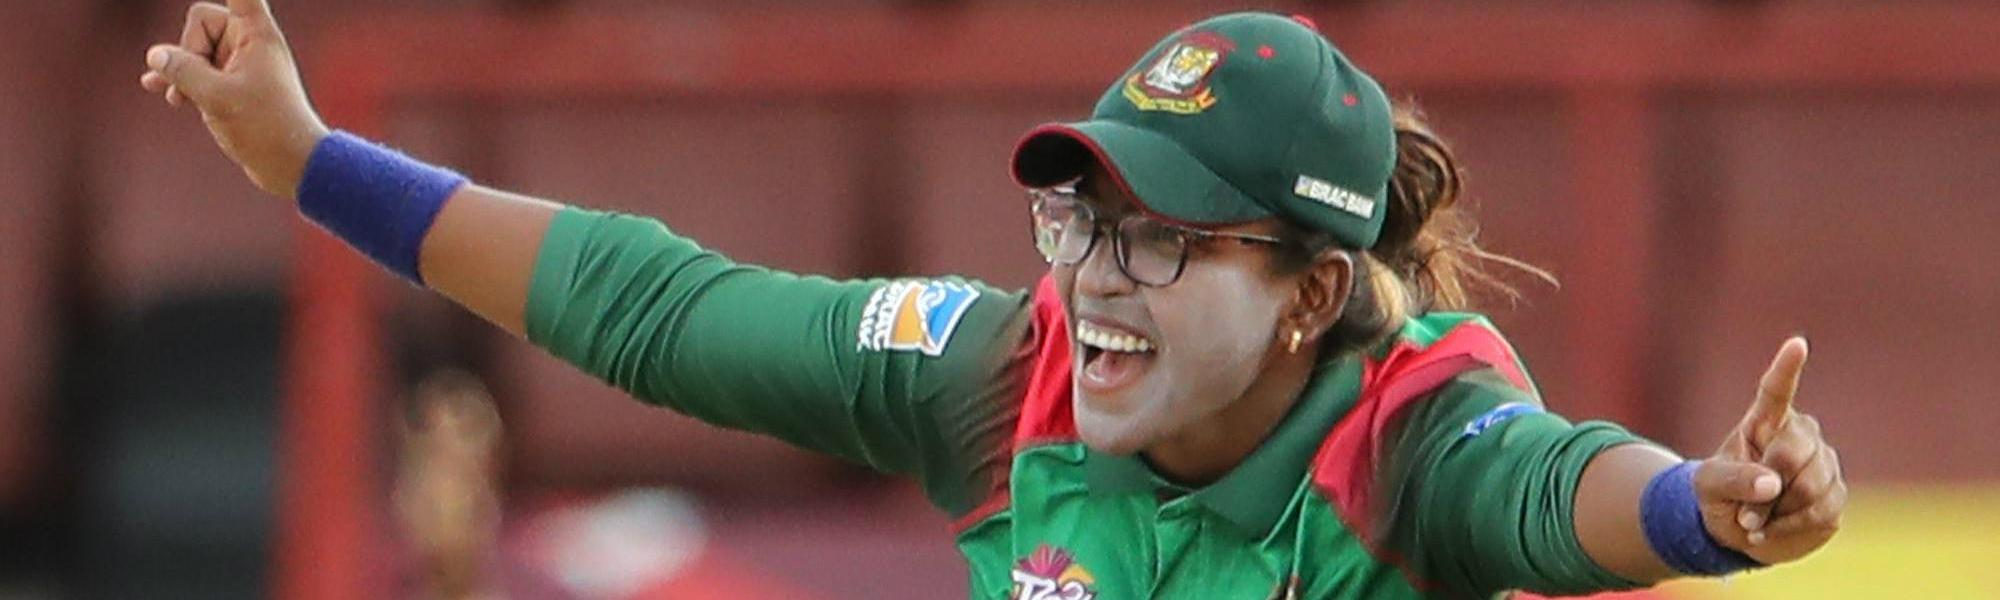 Rumana Ahmed of Bangladesh celebrates during the ICC Women's World T20 warm up match between Bangladesh and Ireland on November 4, 2018 at the Guyana National Stadium in Providence, Guyana.